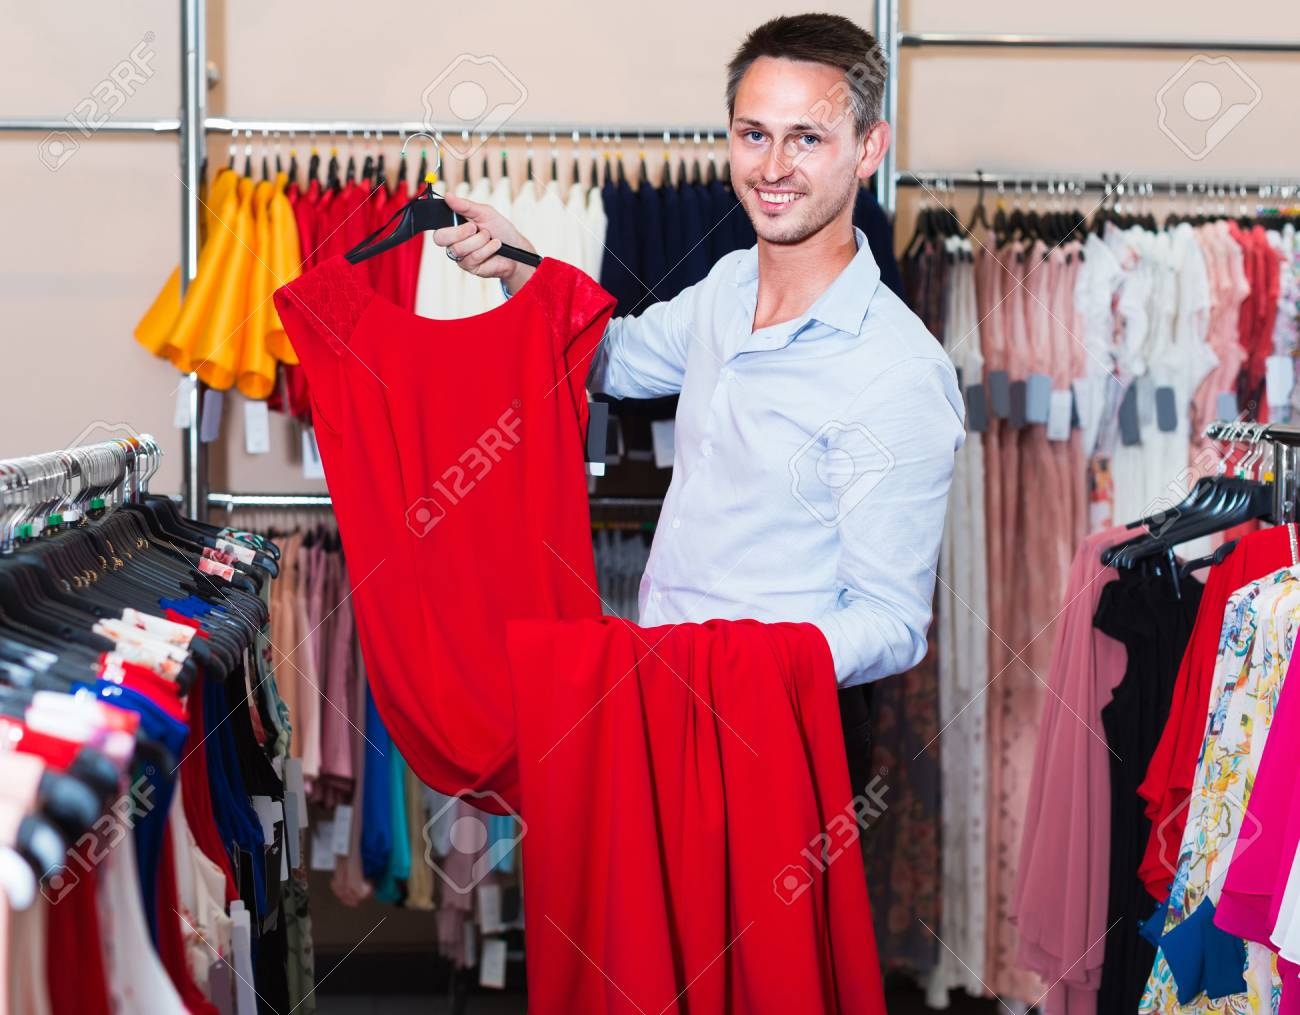 985abb6f60 cheerful french man smiling and offering dresses in women clothing..